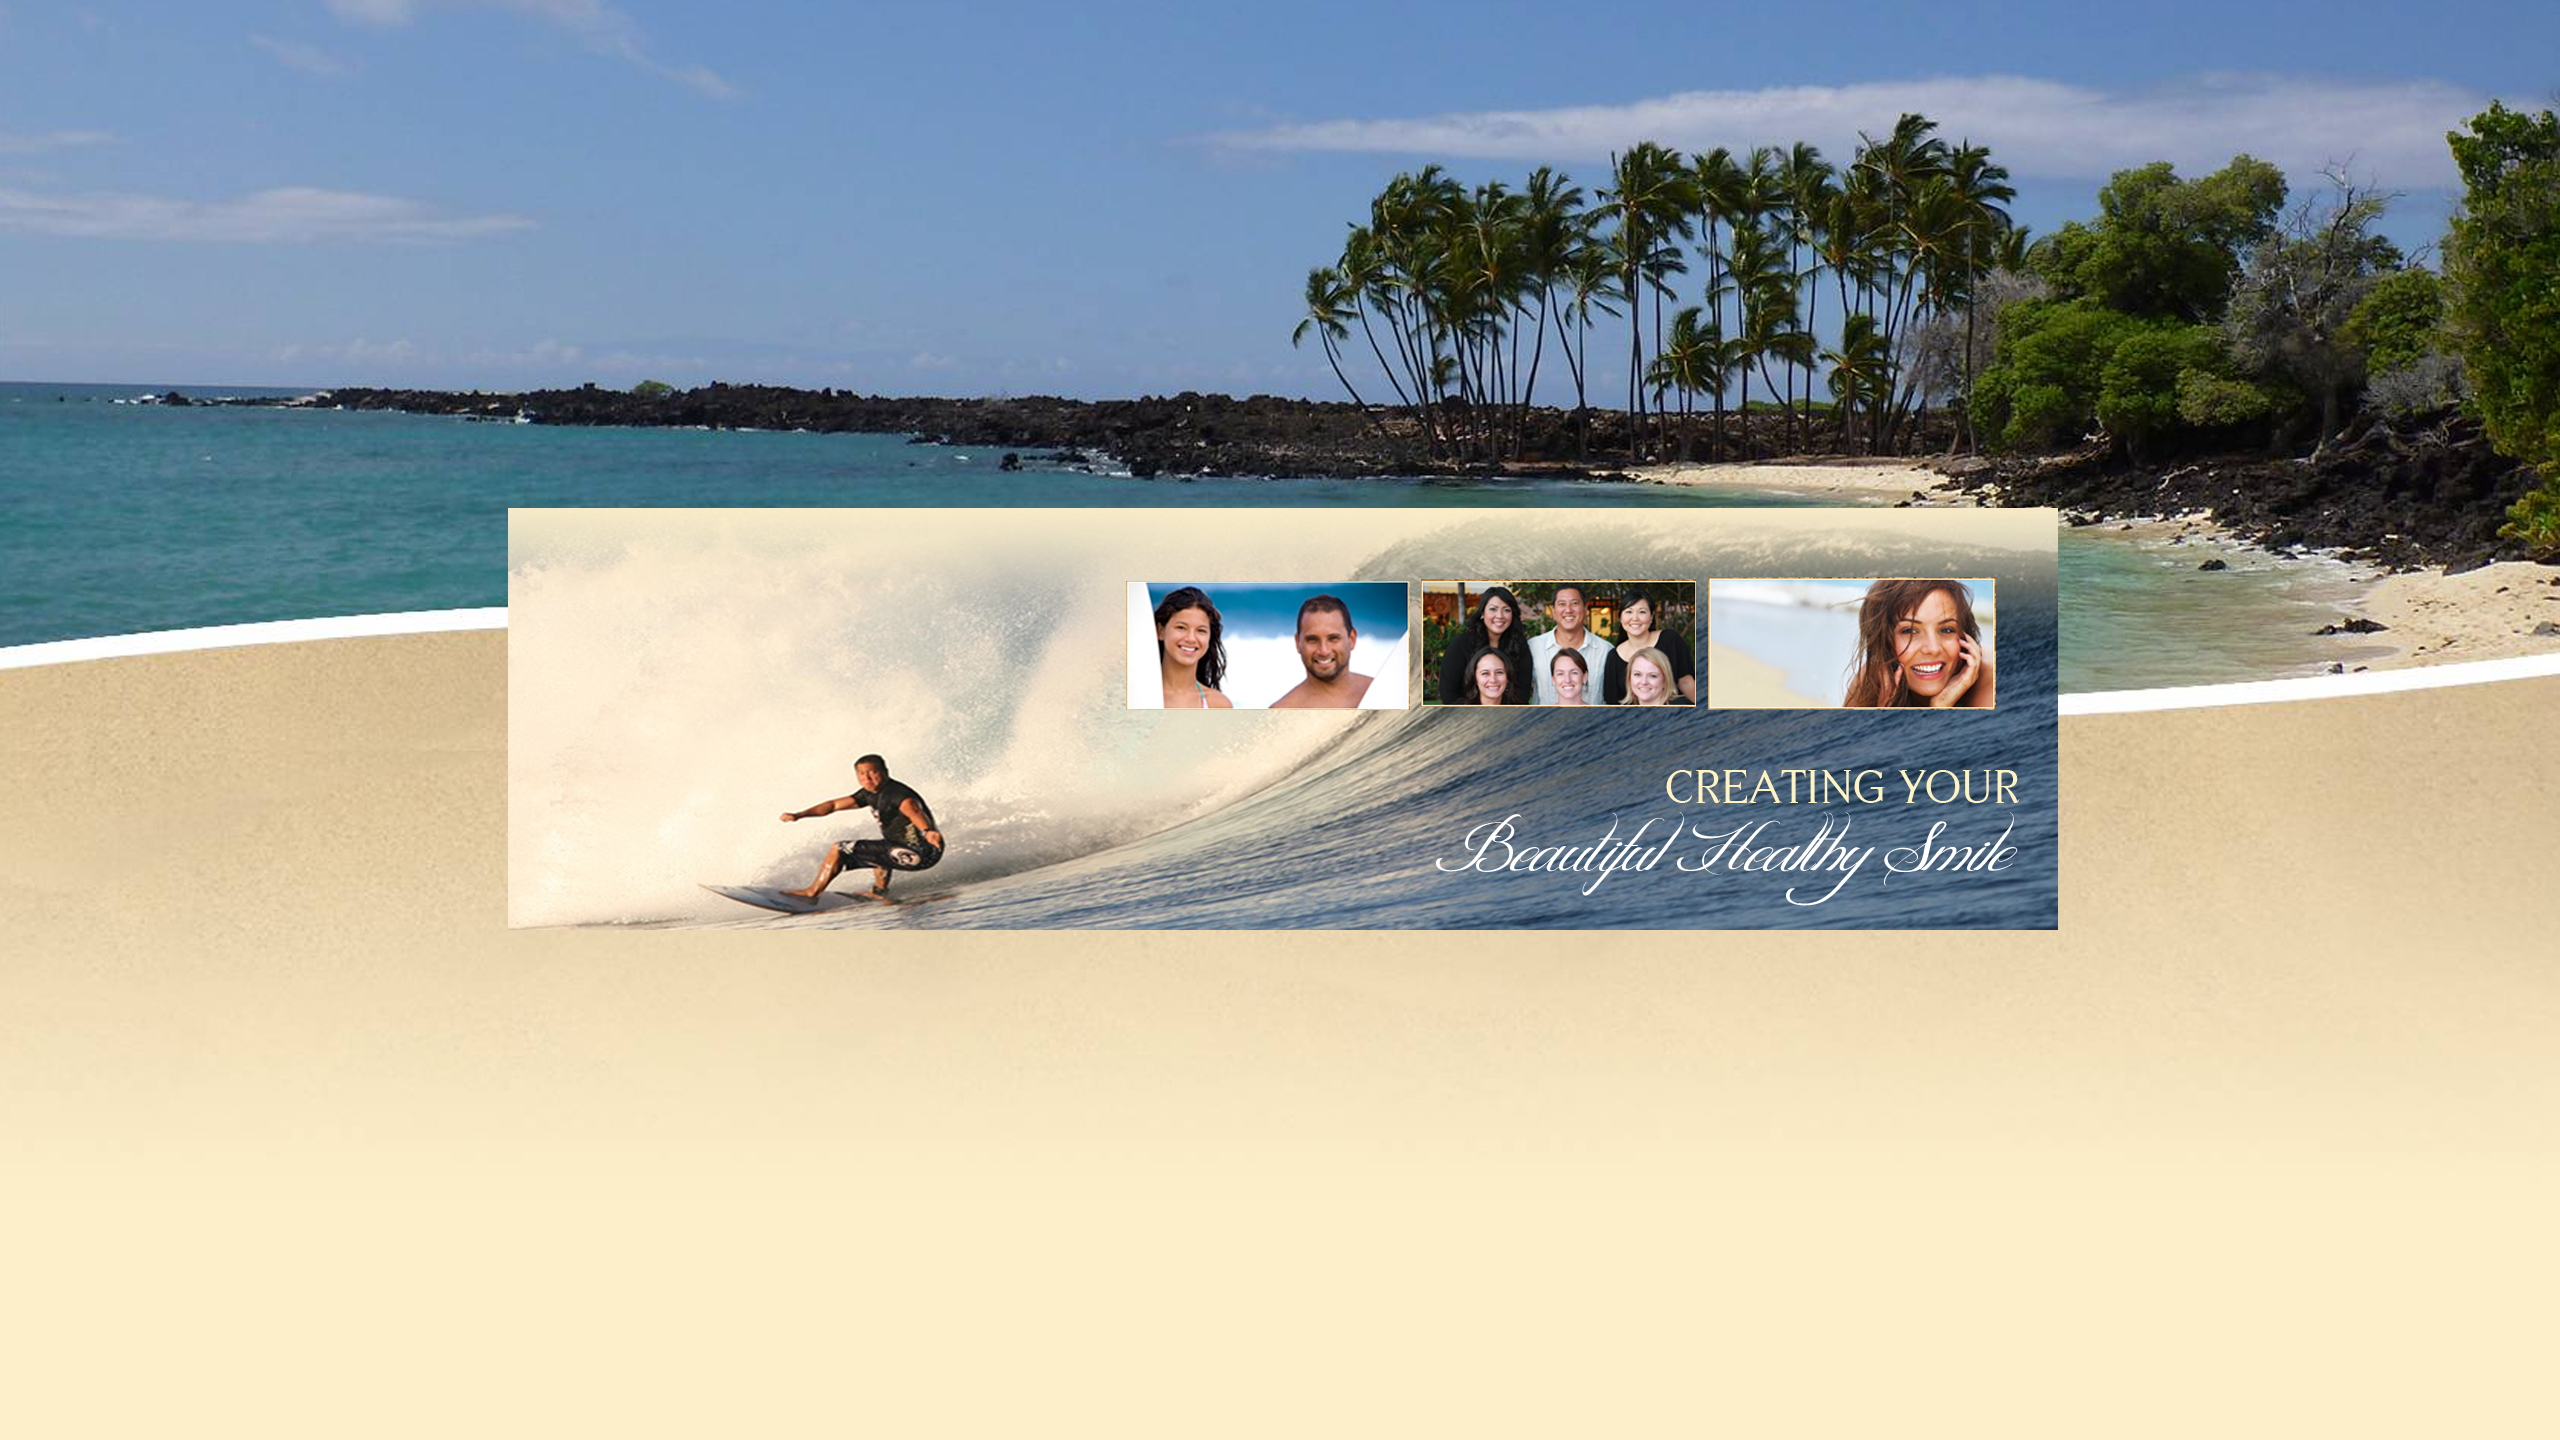 Yokoyama Carter S DDS - cosmetic and restorative dentistry in Kailua Kona, Hawaii directory